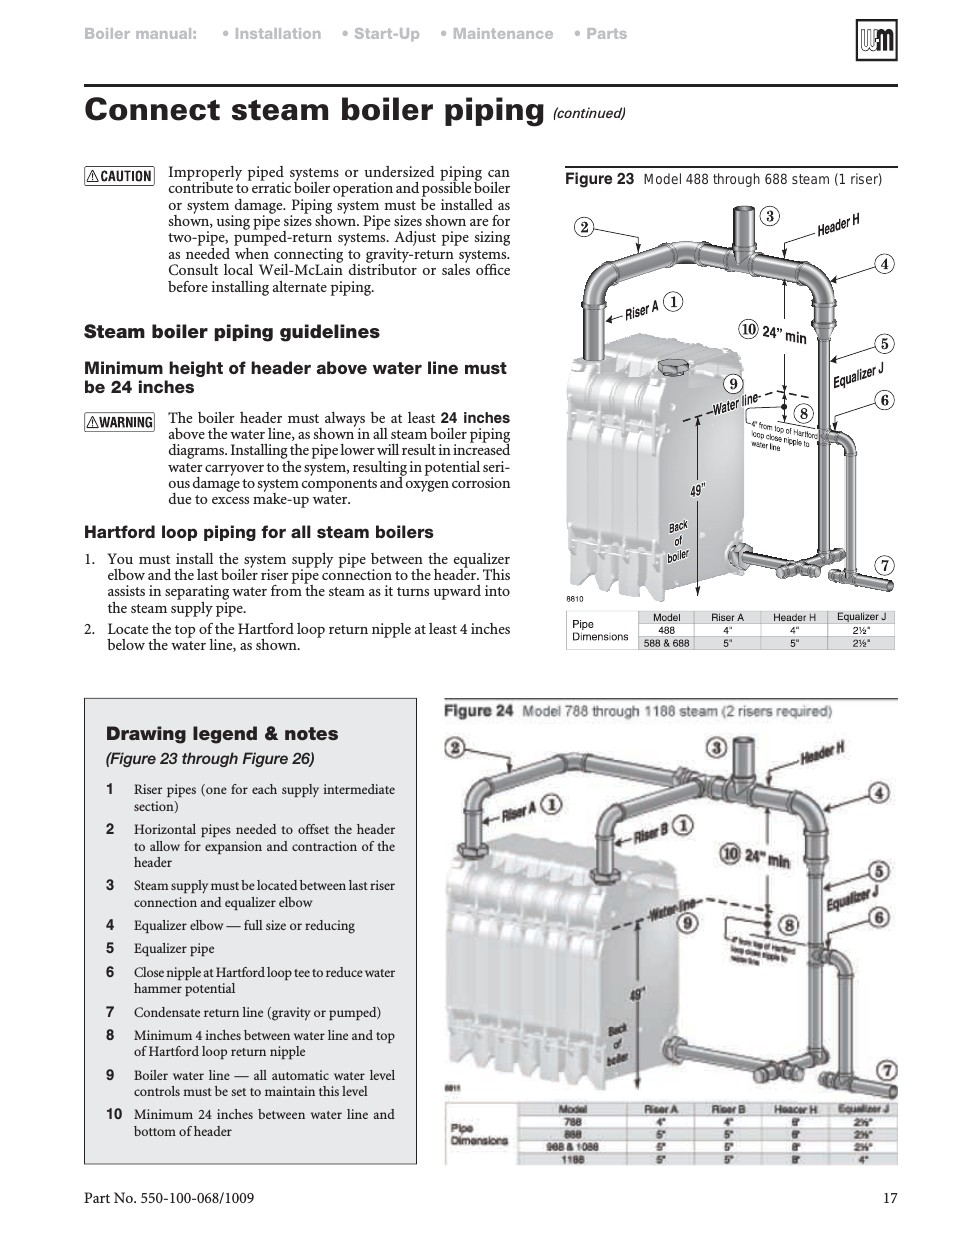 Weil Mclain Boiler Parts Distributors Connect Steam Boiler Piping Weil Mclain 88 User Manual Page 17 40